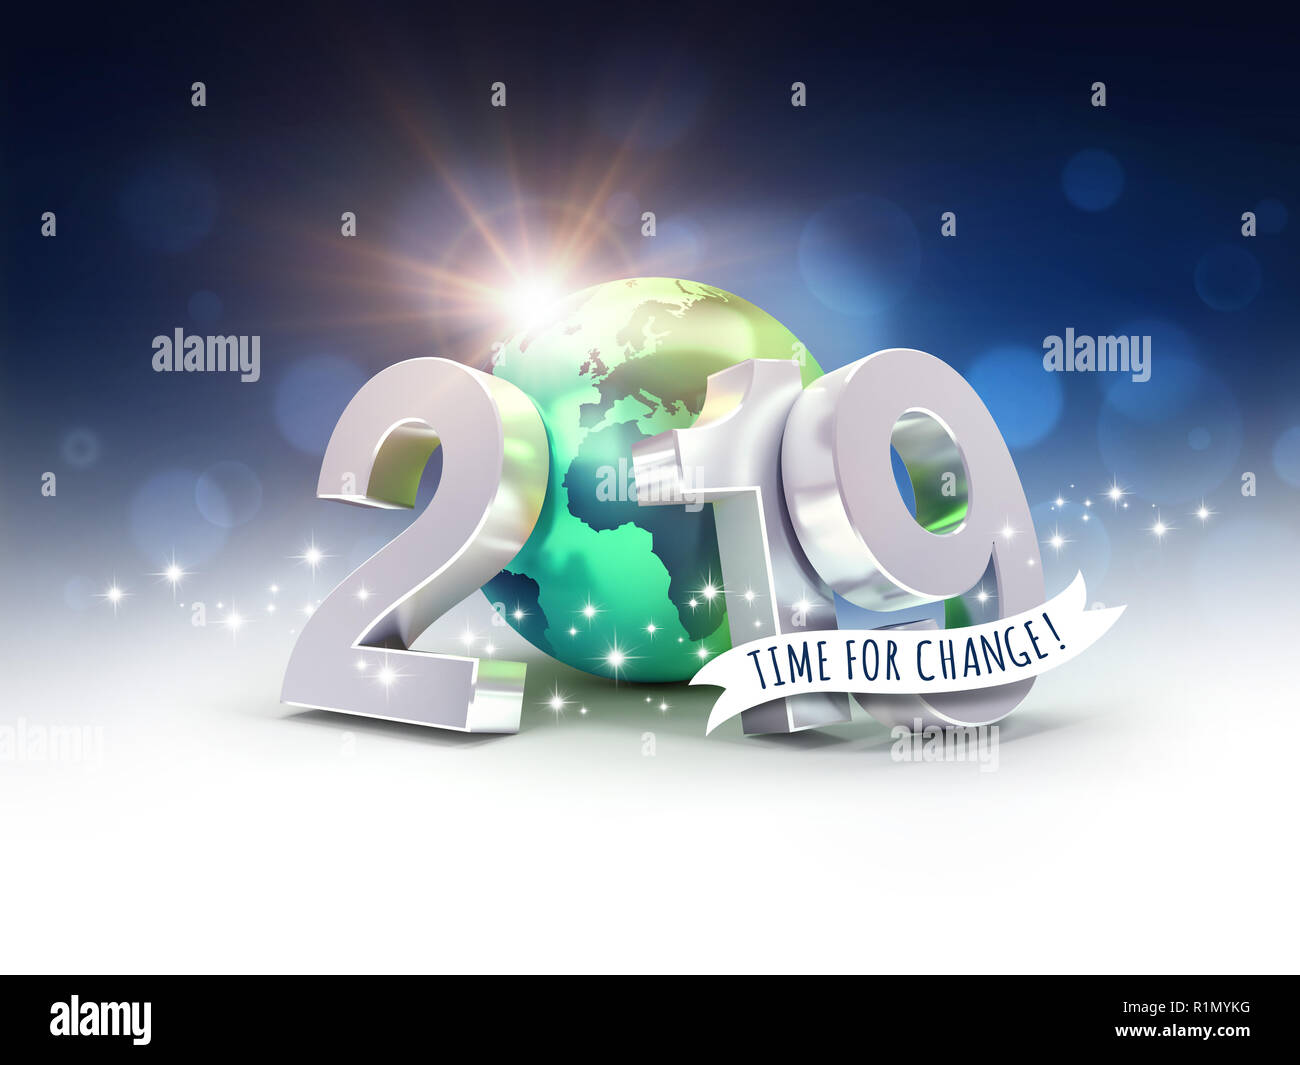 Ecological greeting card - 2019 New Year date number composed with a green planet earth, focused on Europe and Africa, sun shining behind - 3D illustr - Stock Image